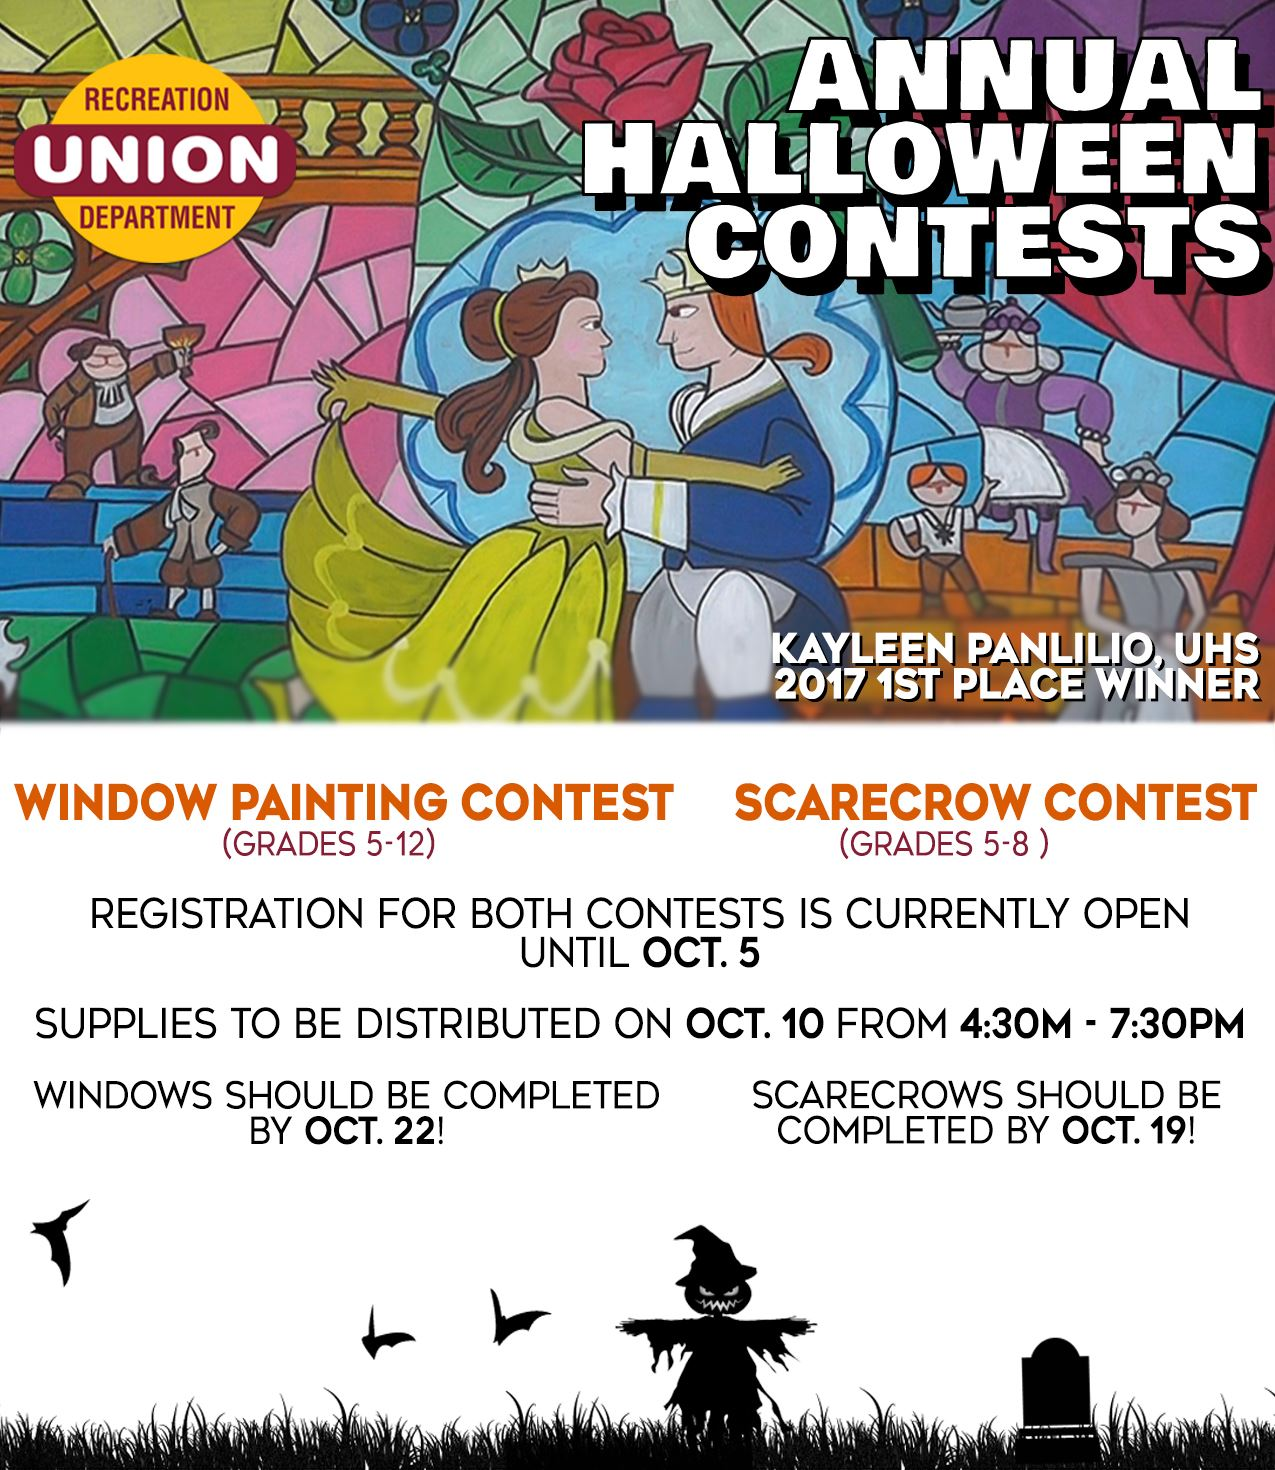 Annual Halloween Contests